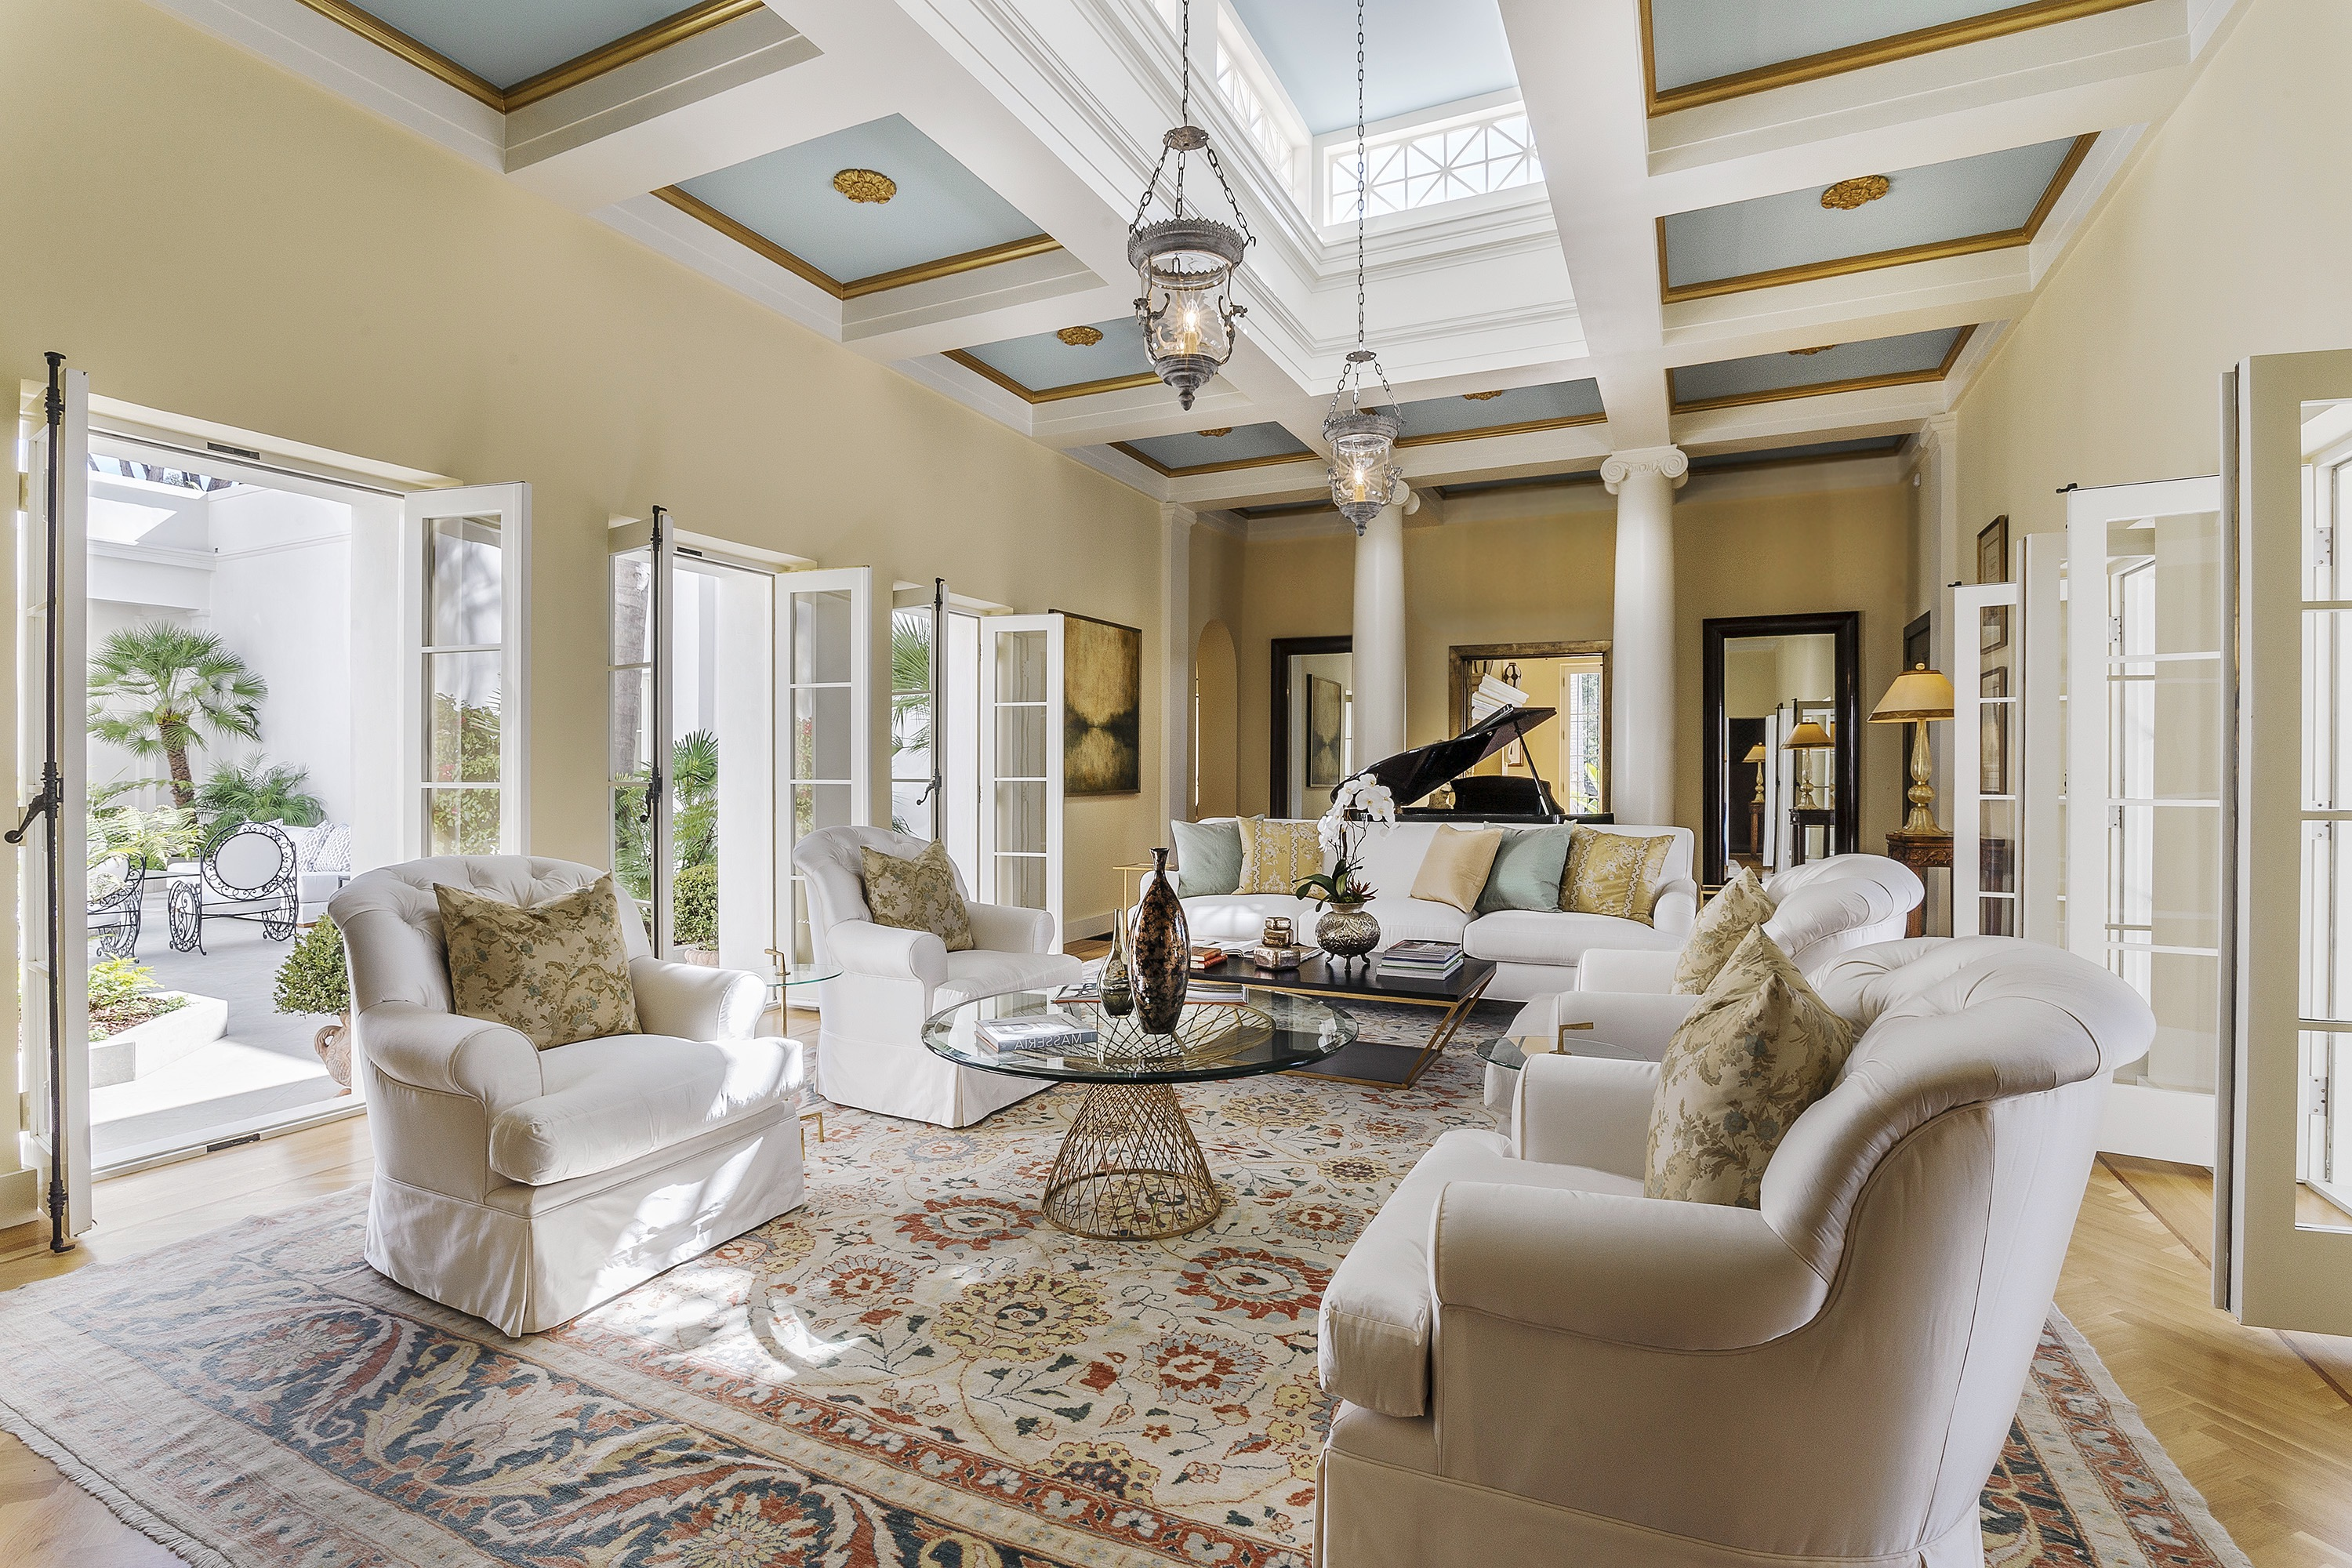 Mediterranean Living Room With Blue Paneled Ceiling (Image 8 of 25)